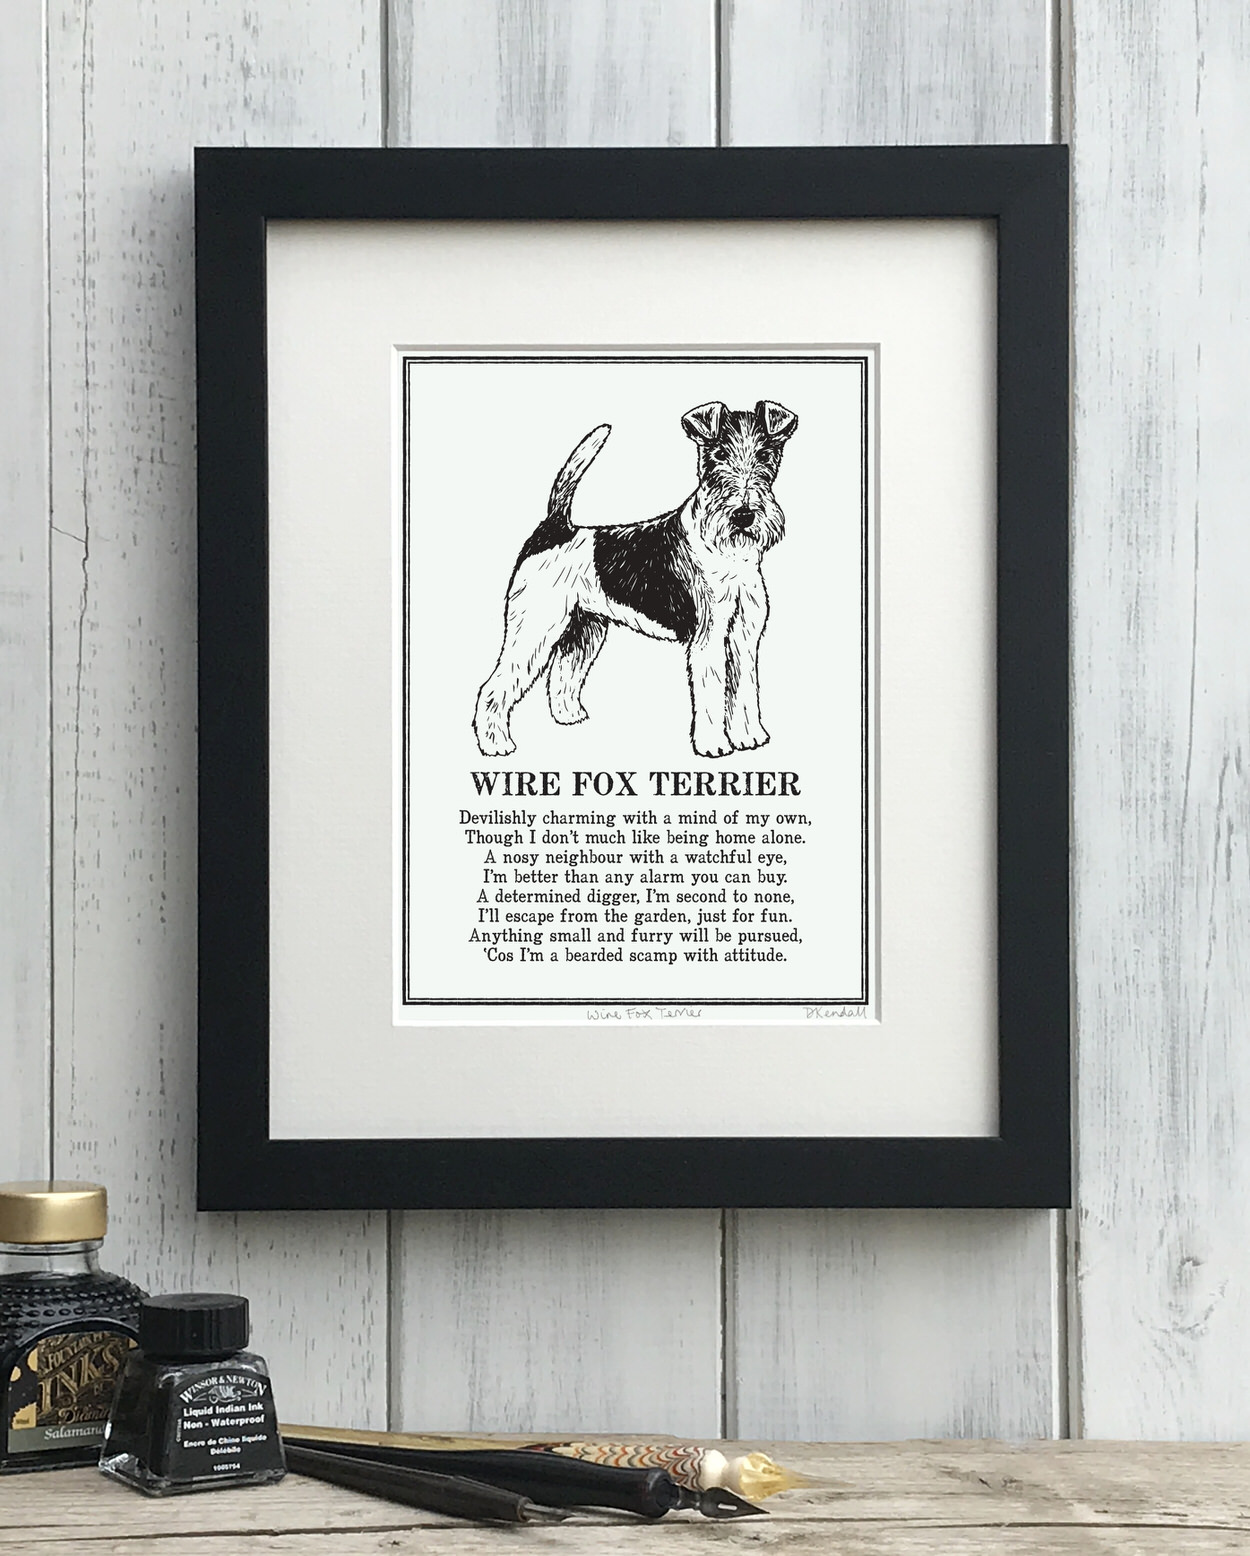 Wire Fox Terrier print illustrated poem by The Enlightened Hound